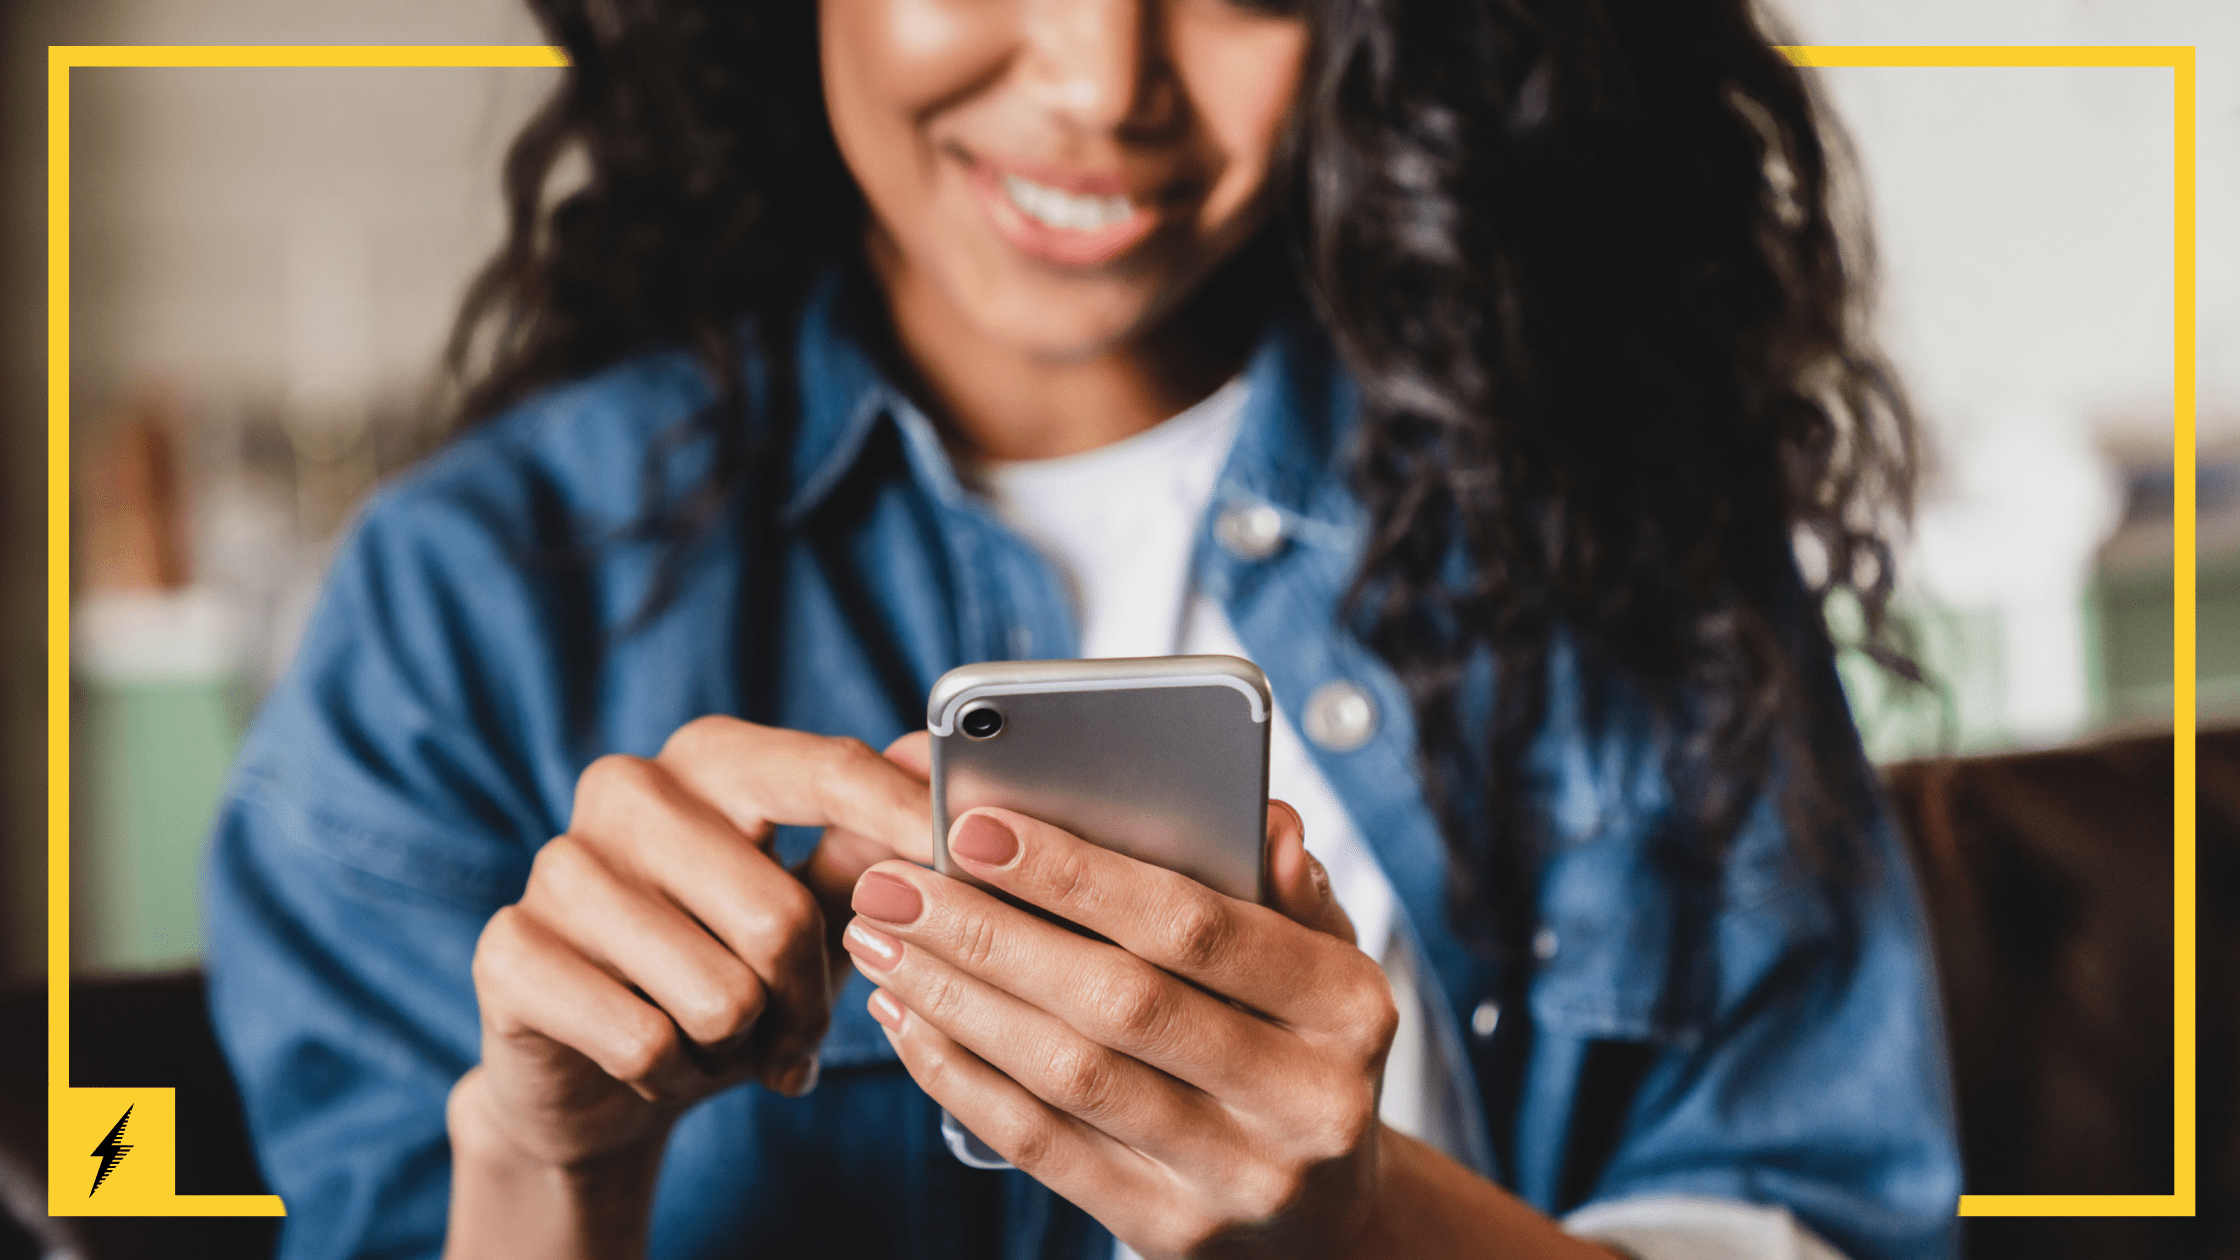 A woman smiles while using a mobile phone.